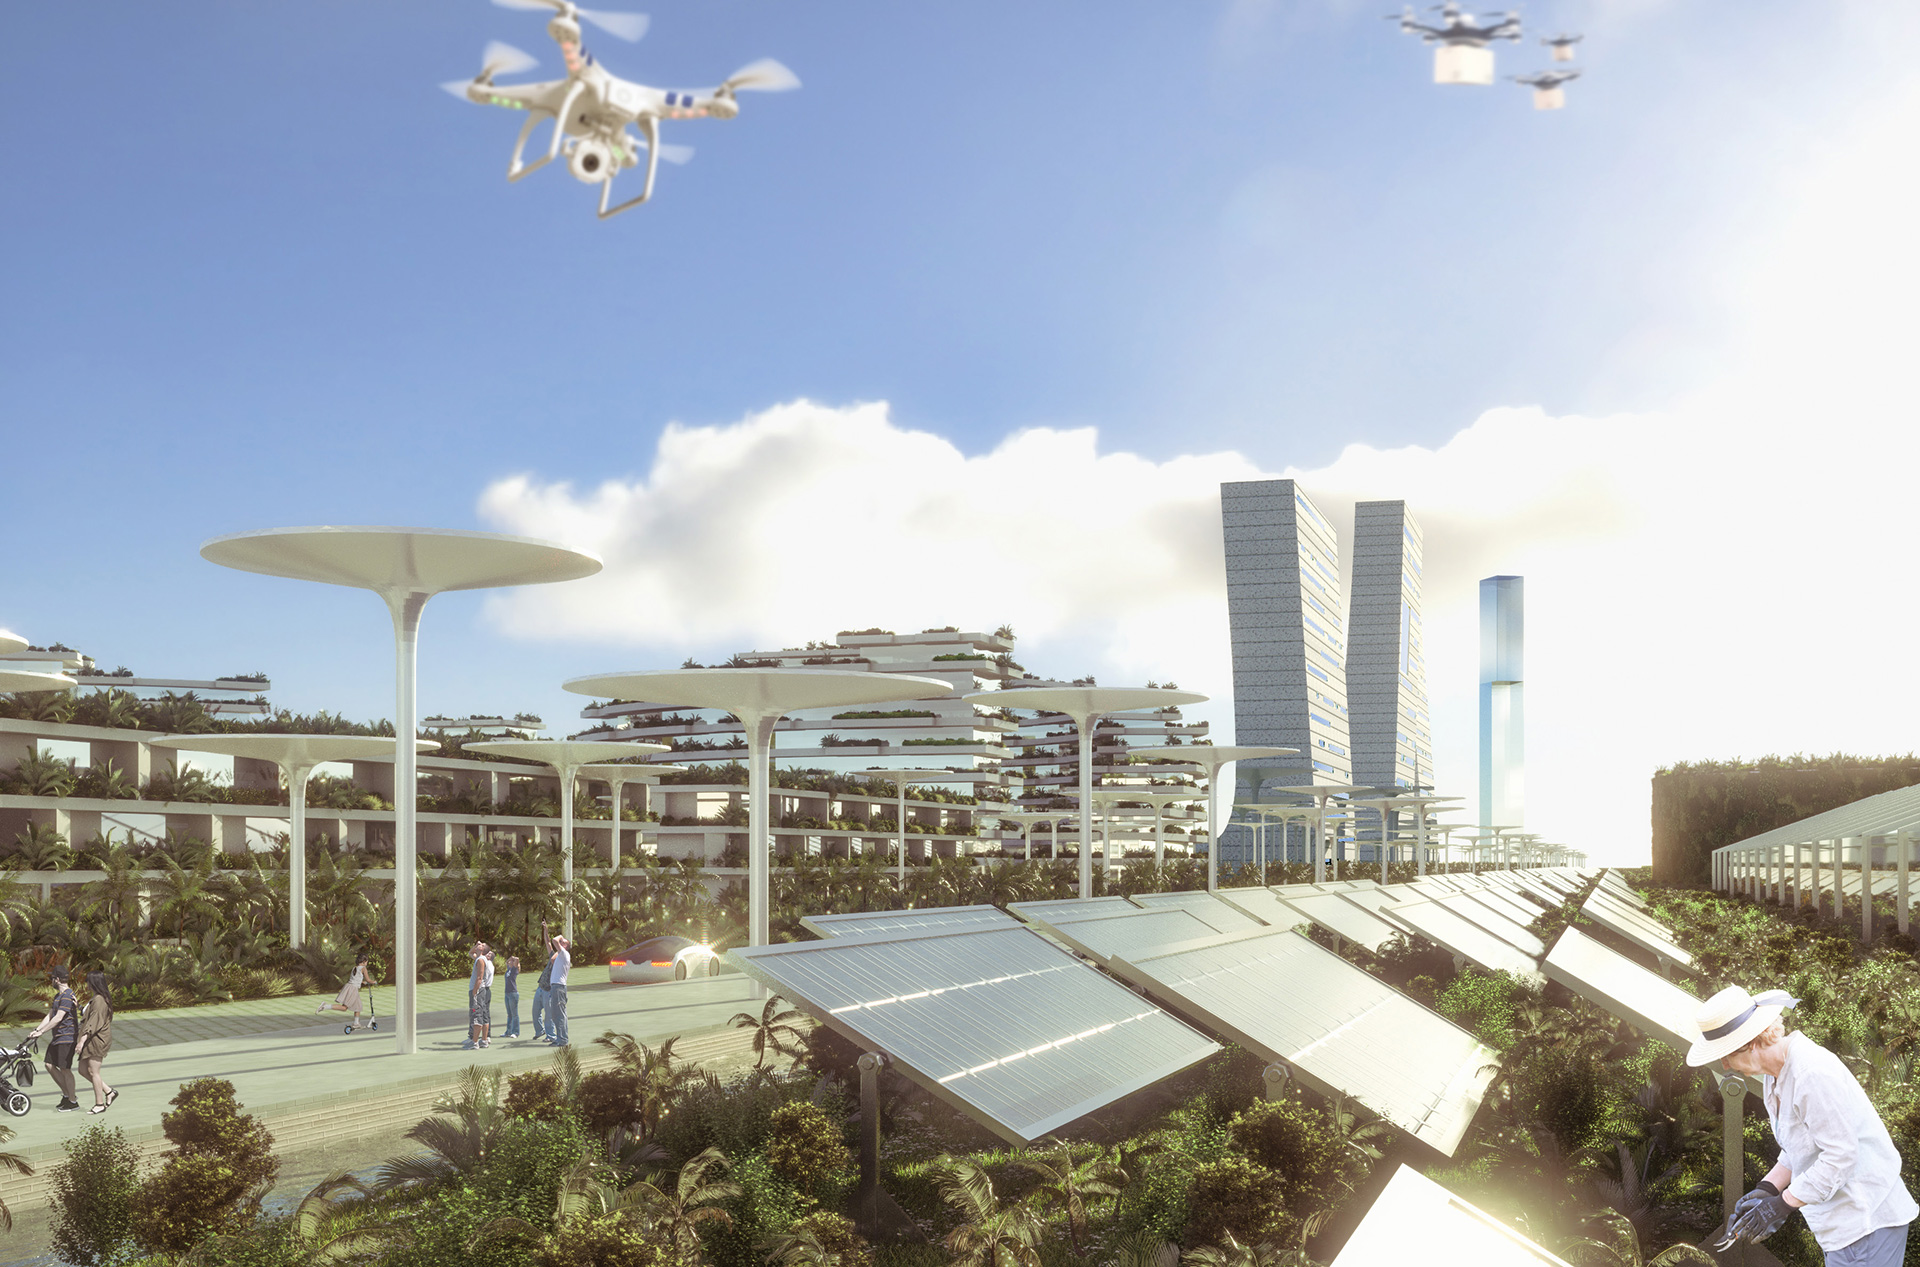 A ring of solar panels will dot the city making it energy sufficient | Smart Forest City | Stefano Boeri Architetti | STIRworld